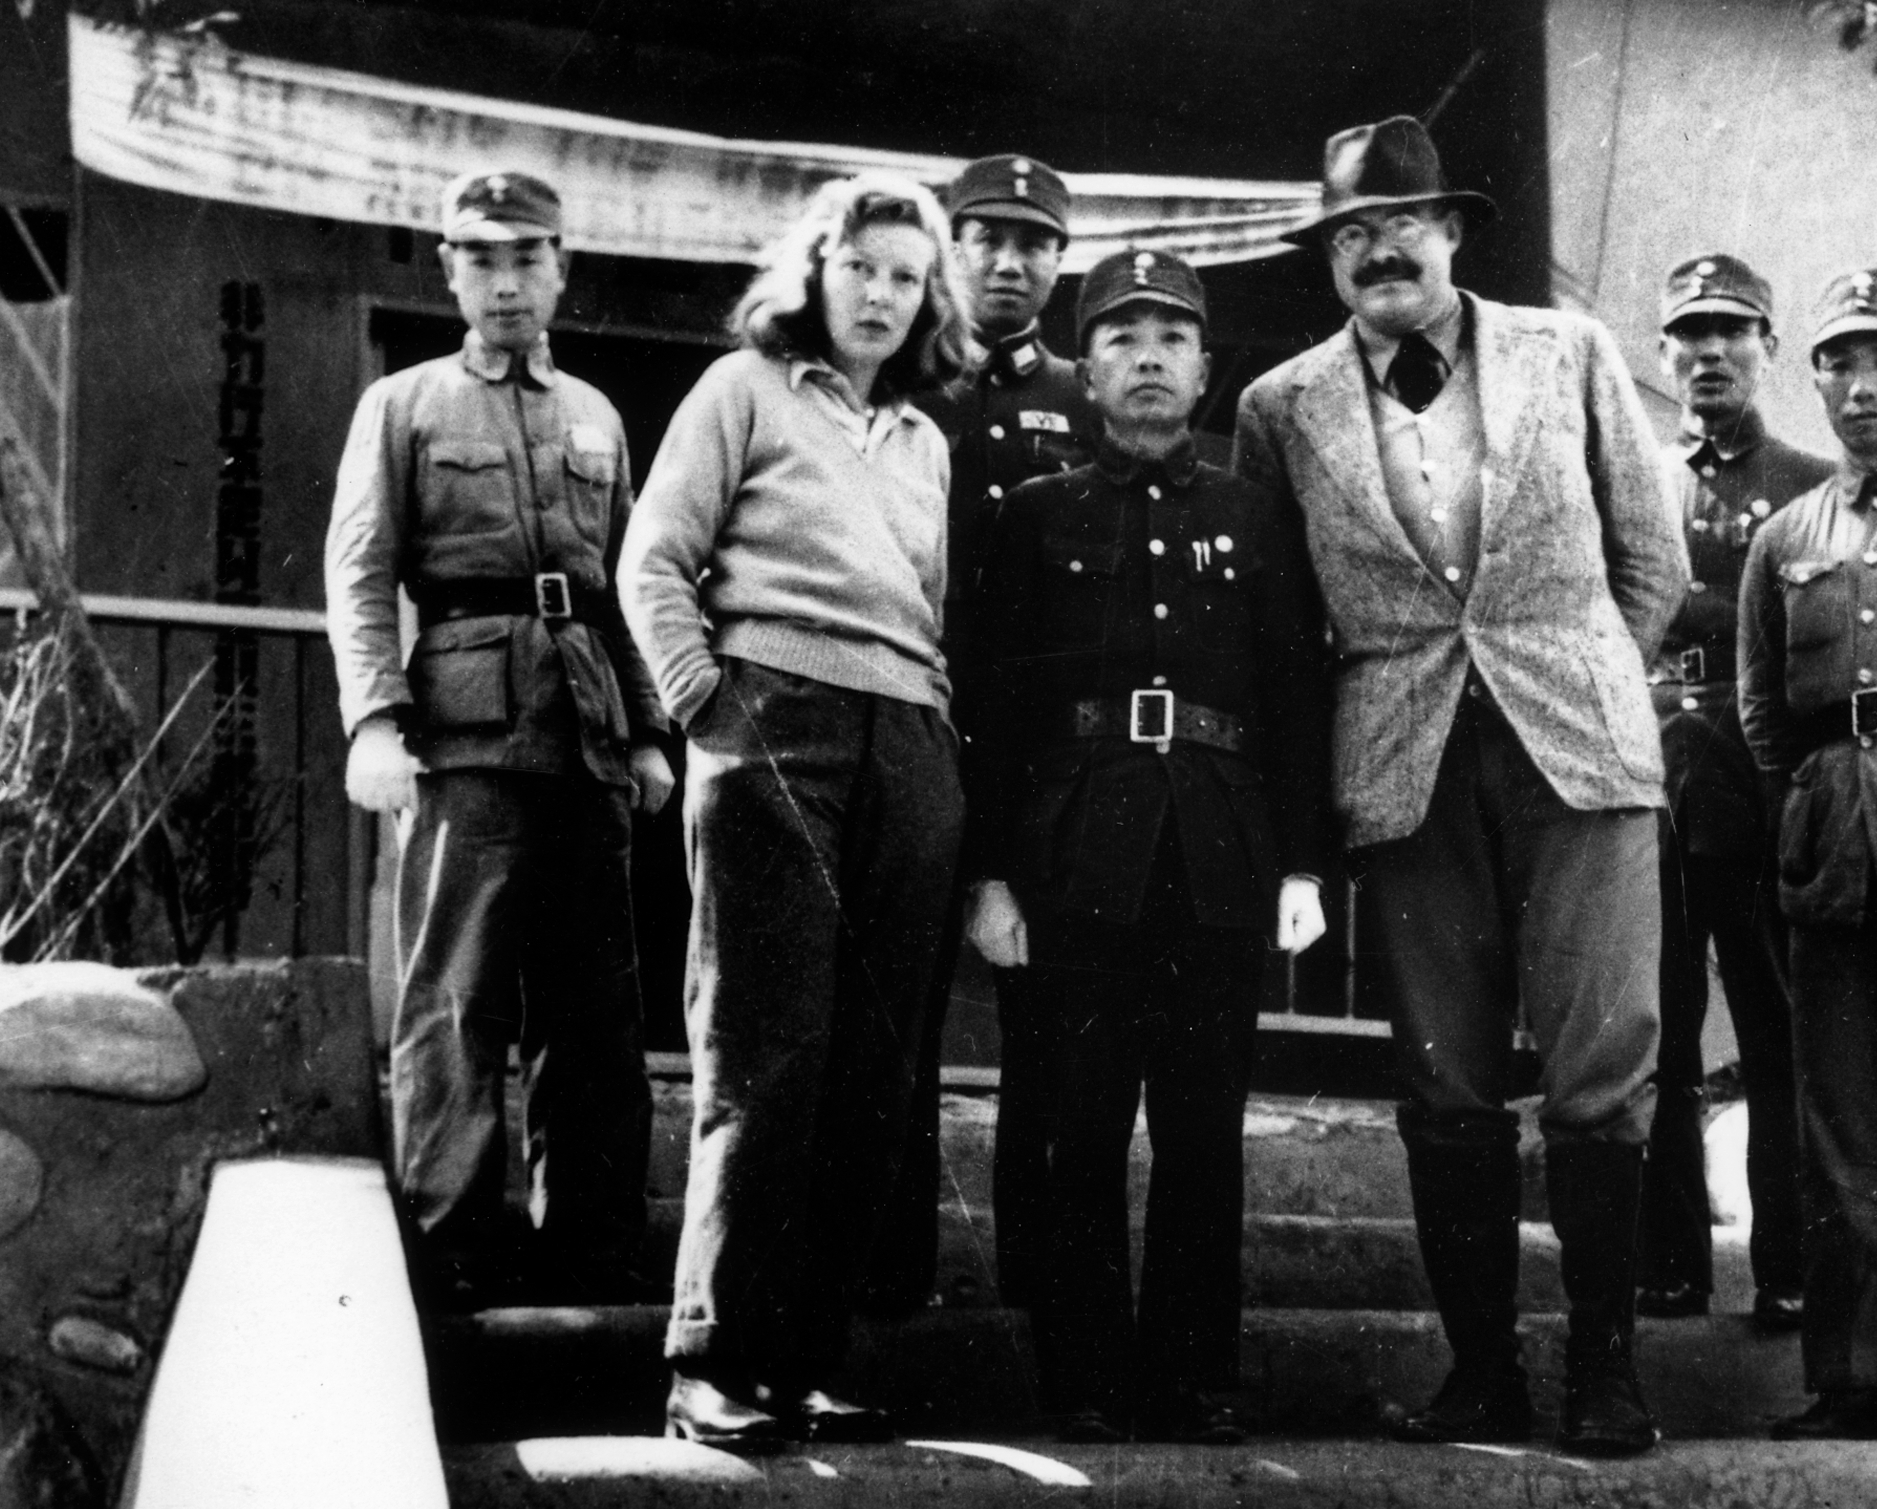 File:Gellhorn Hemingway 1941.jpg - Wikipedia, the free encyclopedia